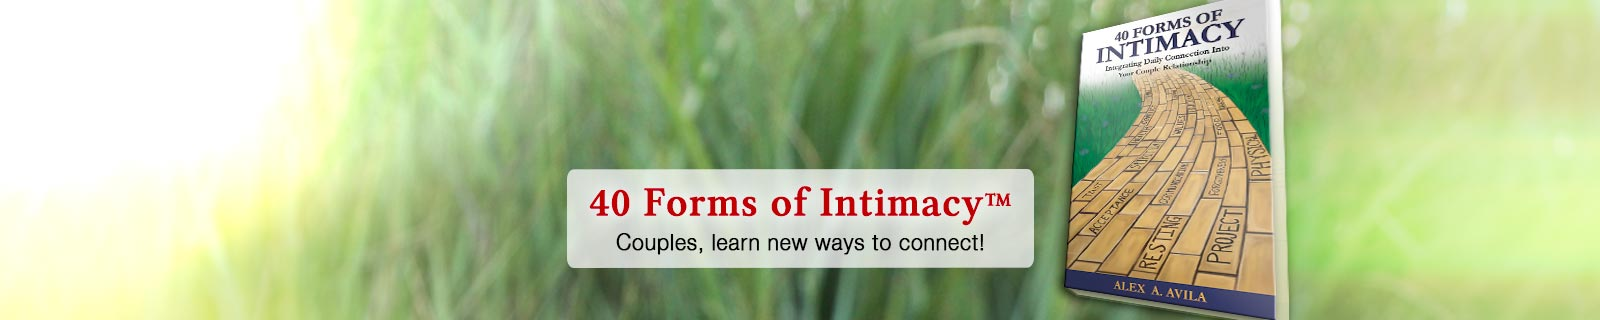 40 Forms of Intimacy™ Book